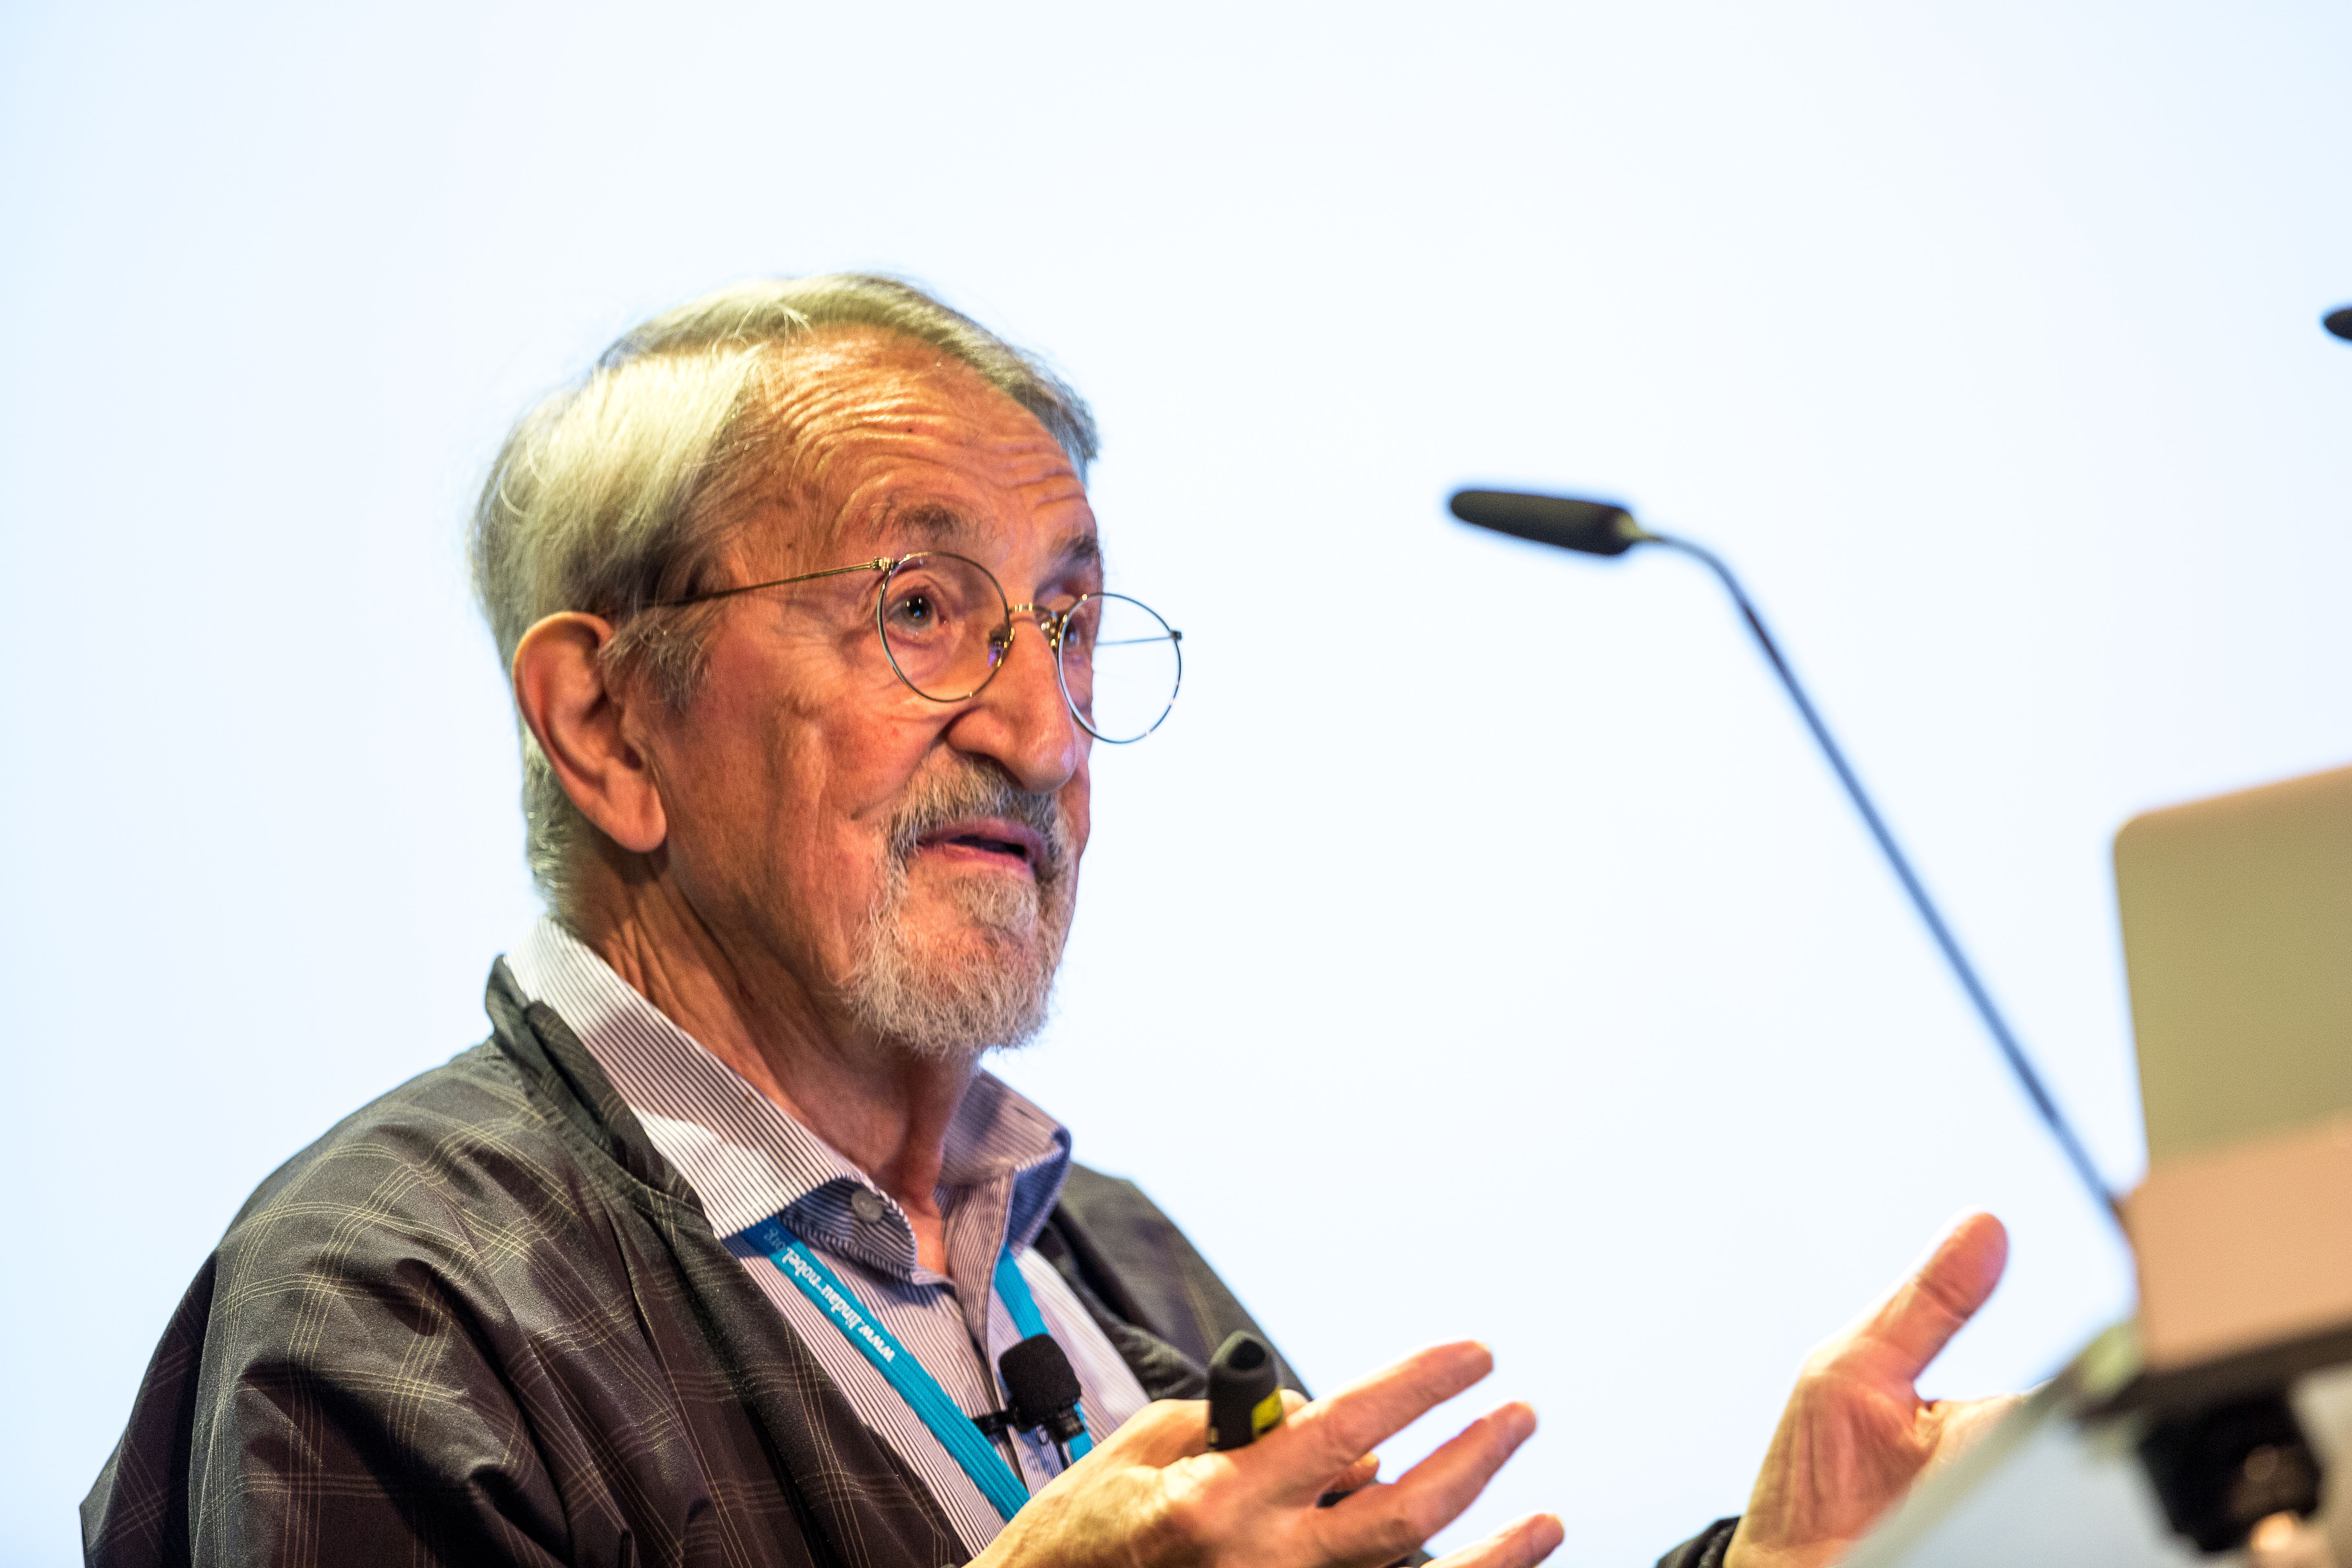 Martin Karplus, Picture/Credit: Christian Flemming/Lindau Nobel Laureate Meetings